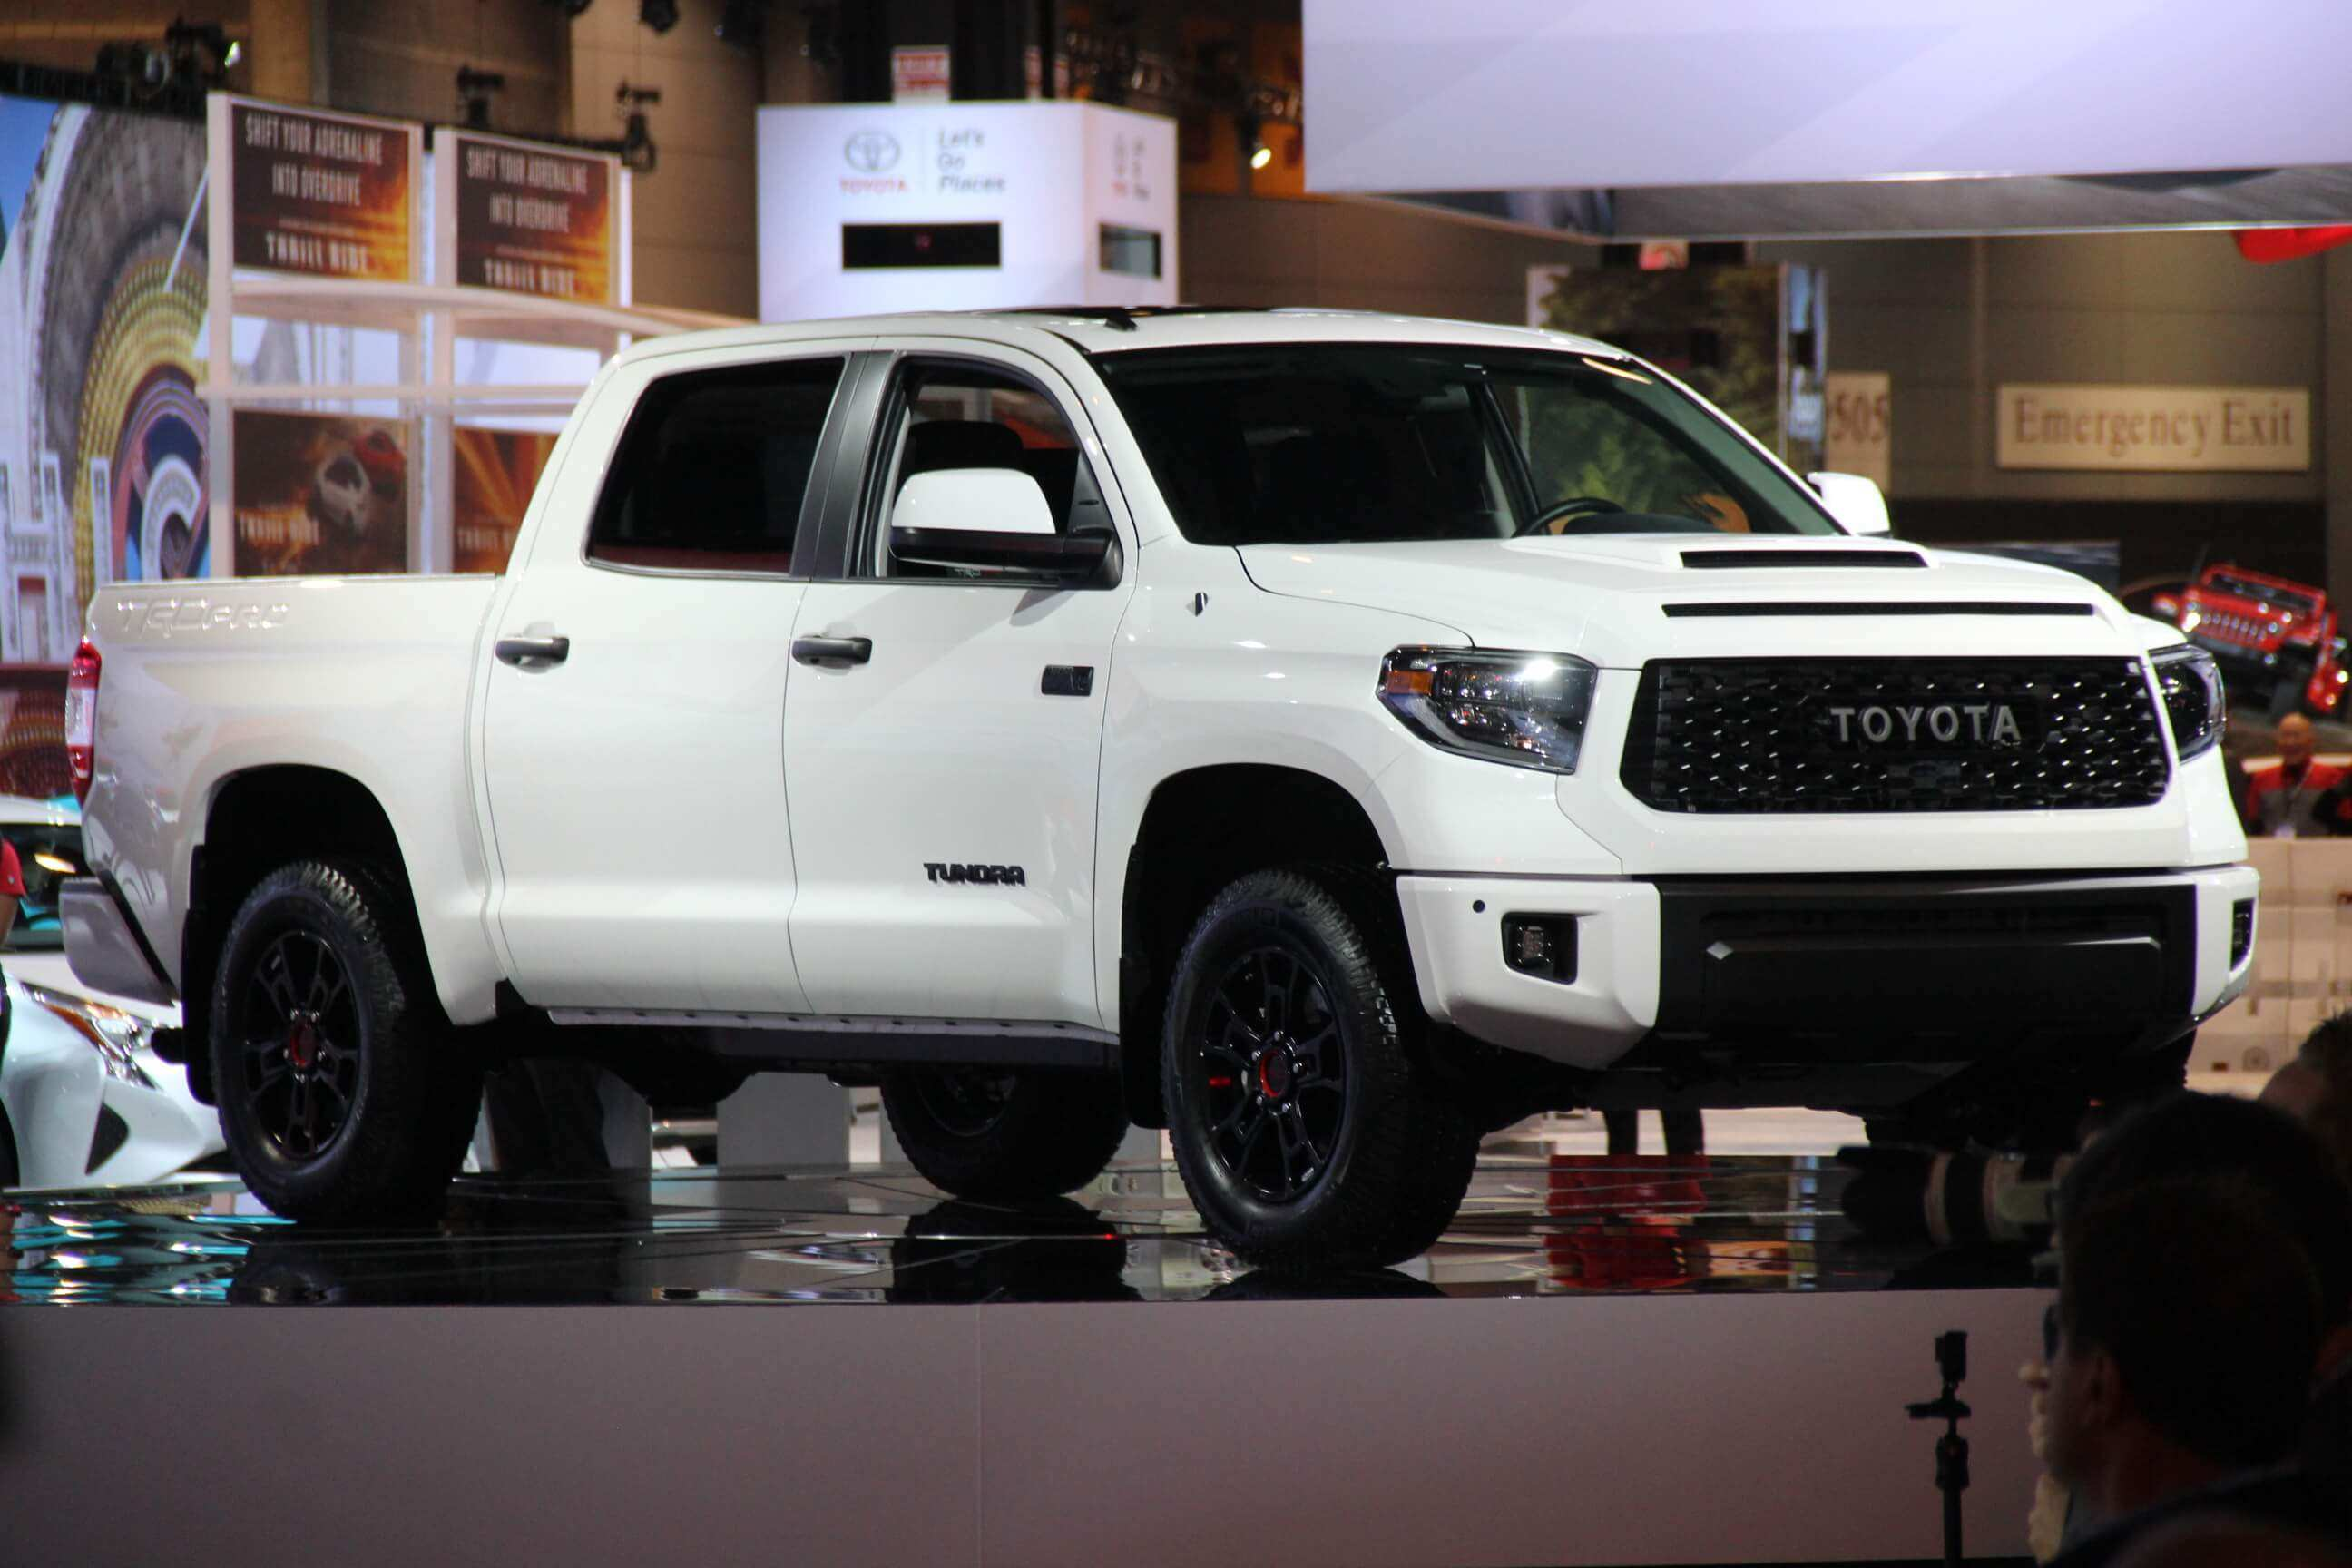 70 New 2020 Toyota Tundra Trd Pro Images with 2020 Toyota Tundra Trd Pro